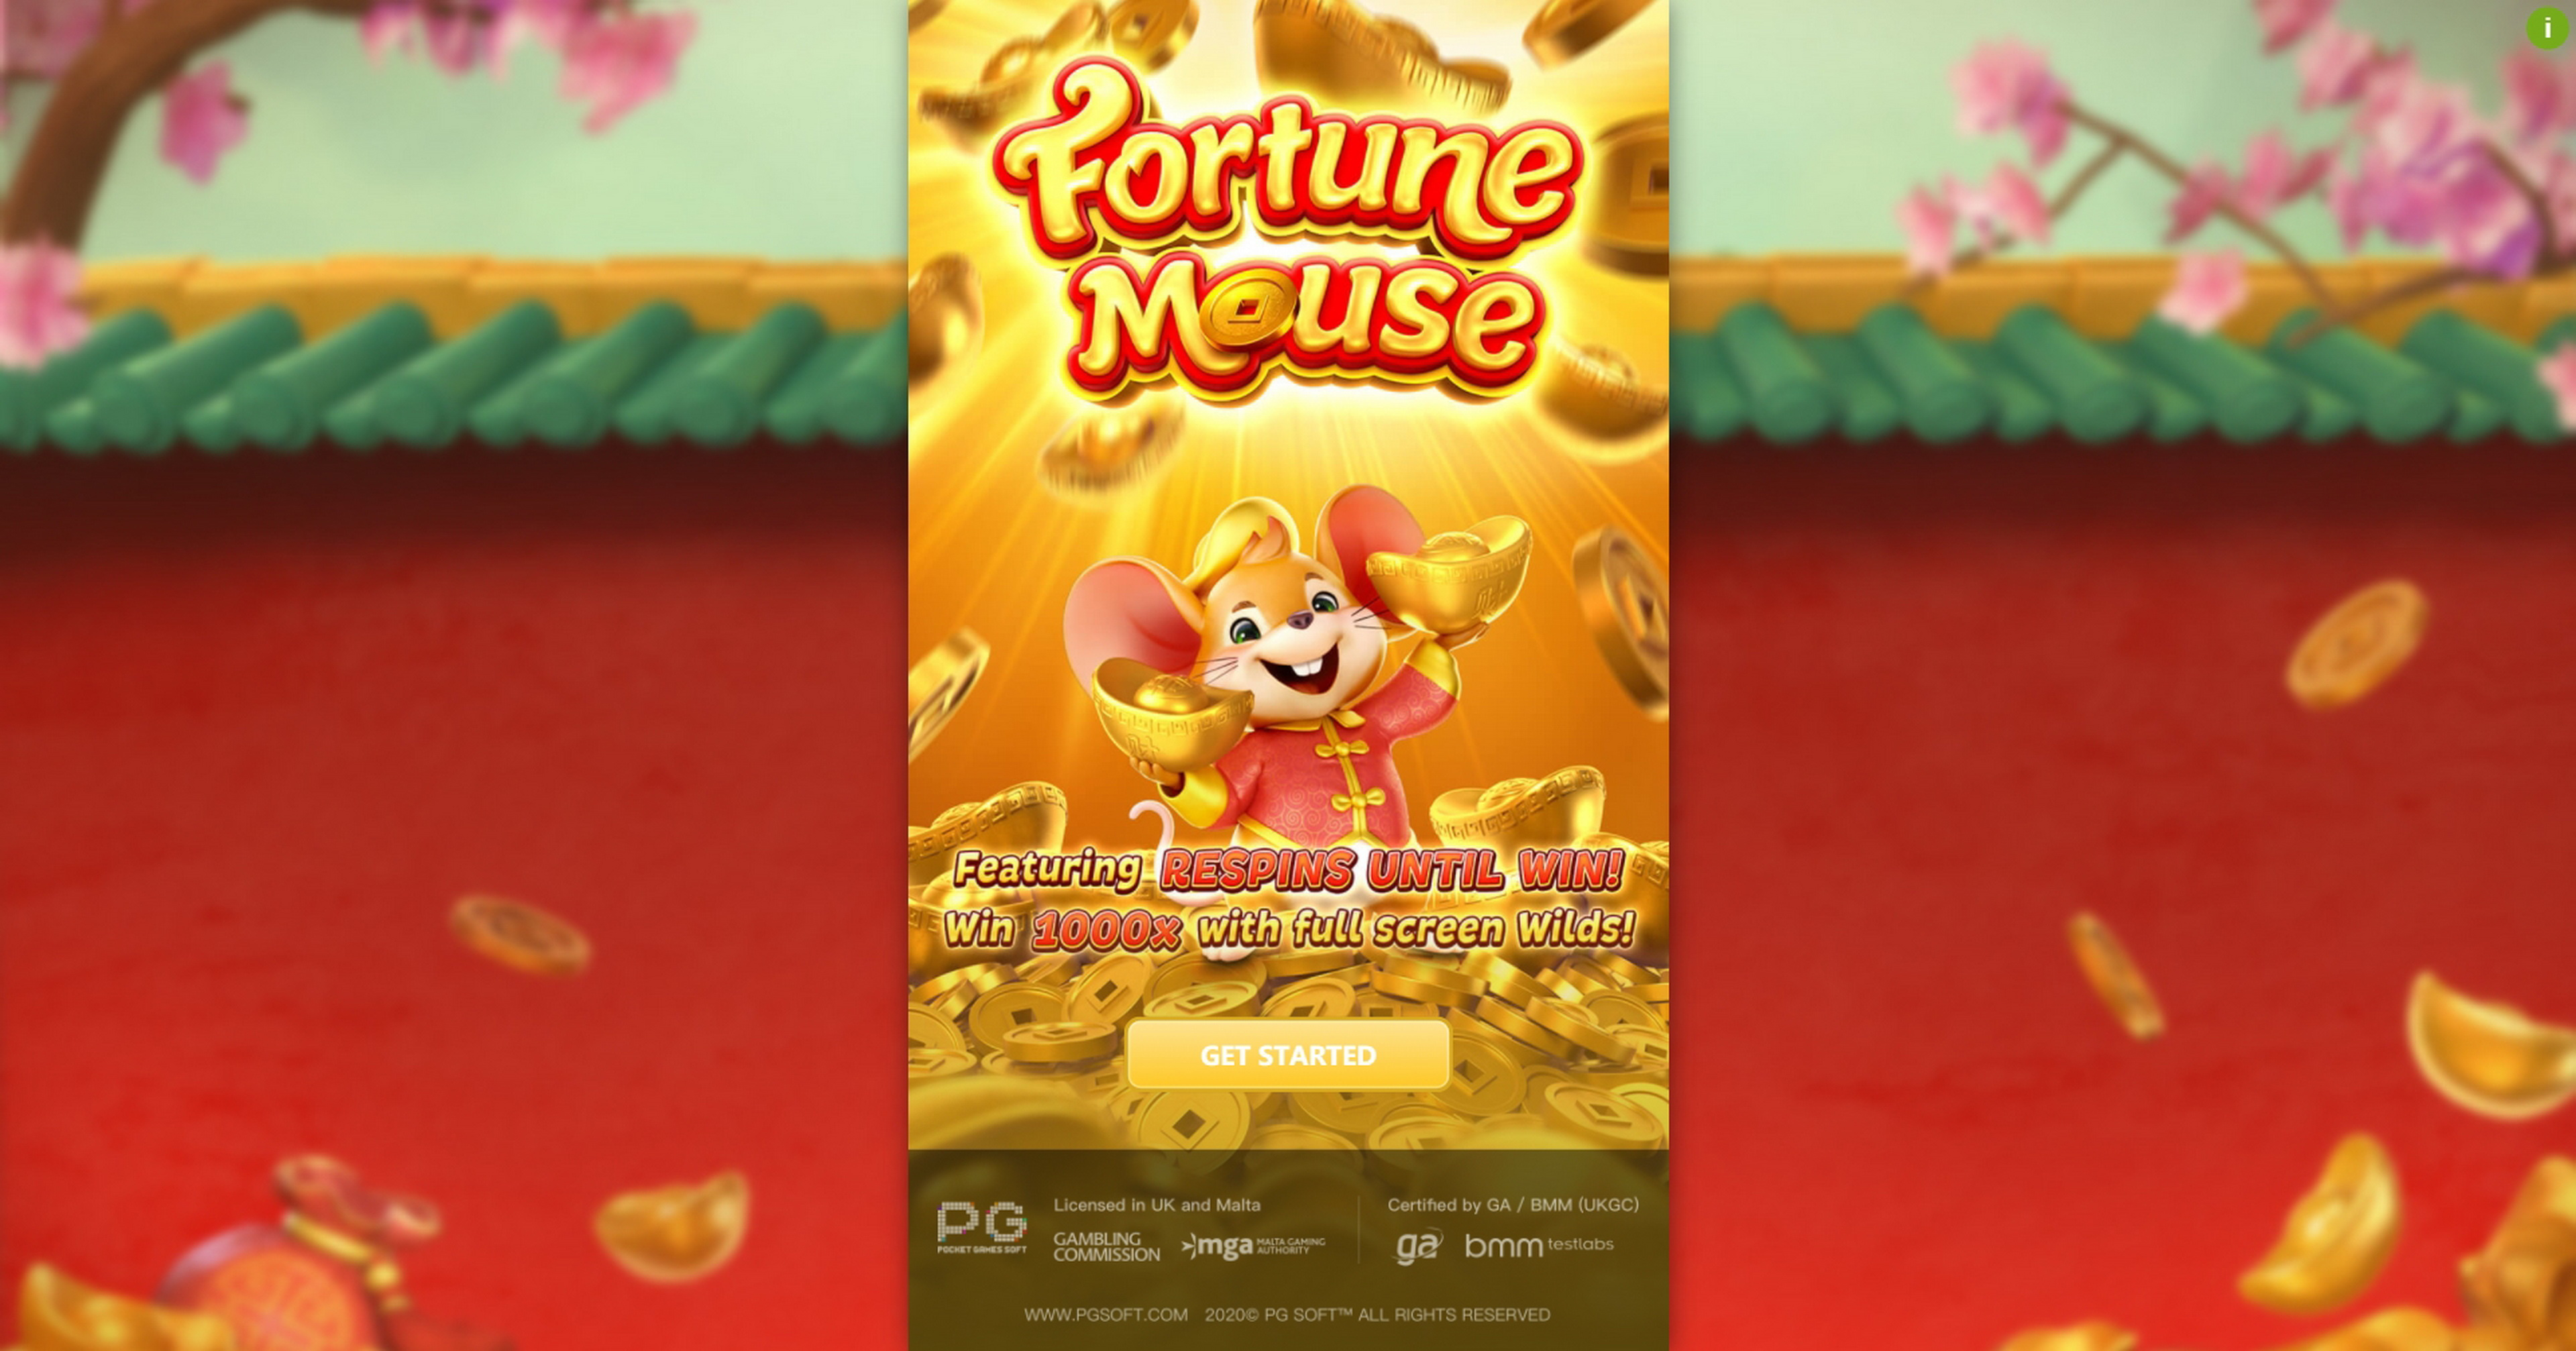 Play Fortune Mouse Free Casino Slot Game by PG Soft